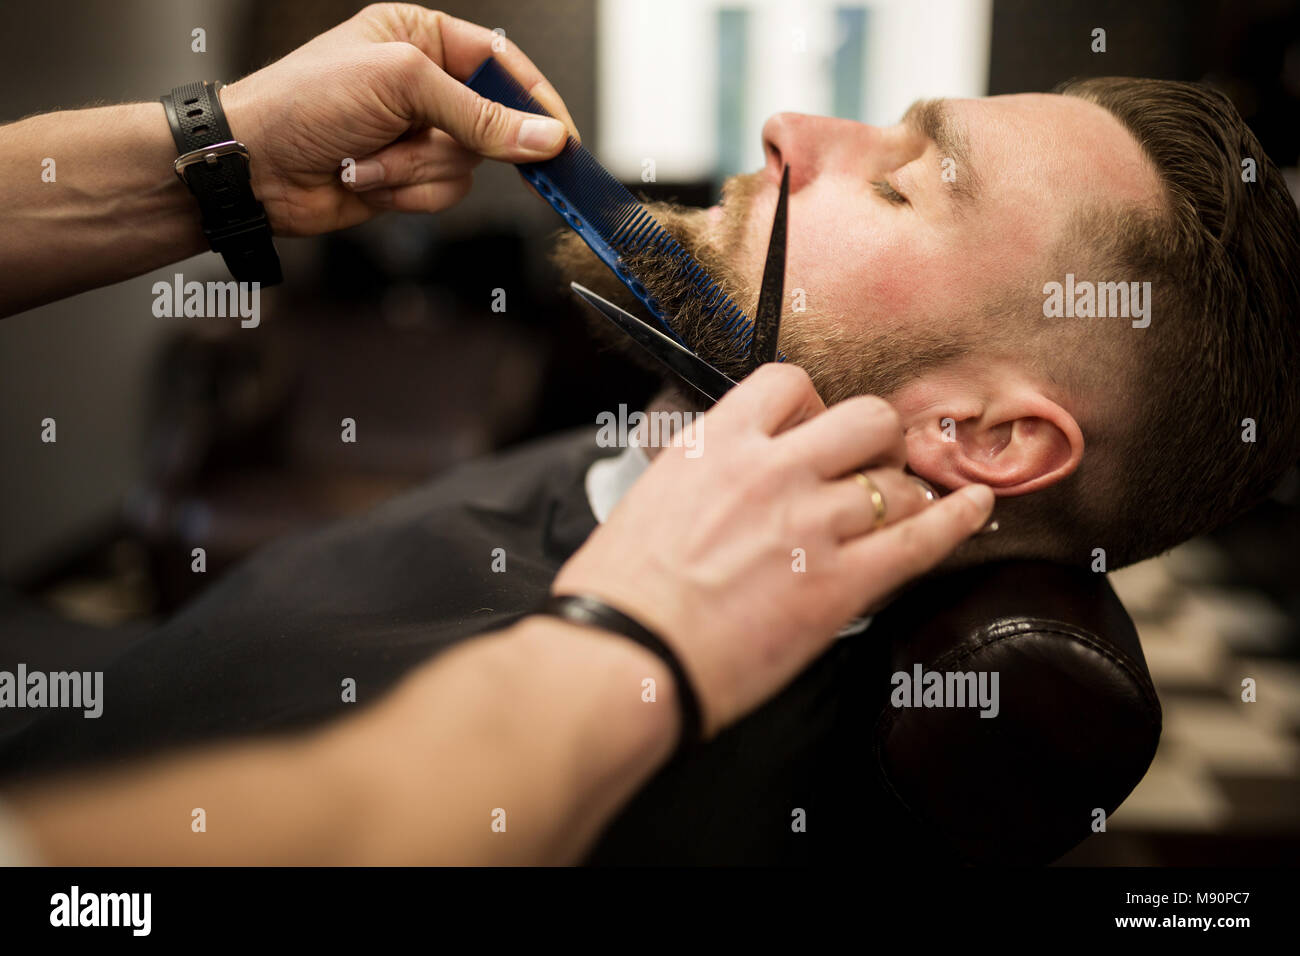 Profile portrait of young man having beard trimmed at barber salon - Stock Image